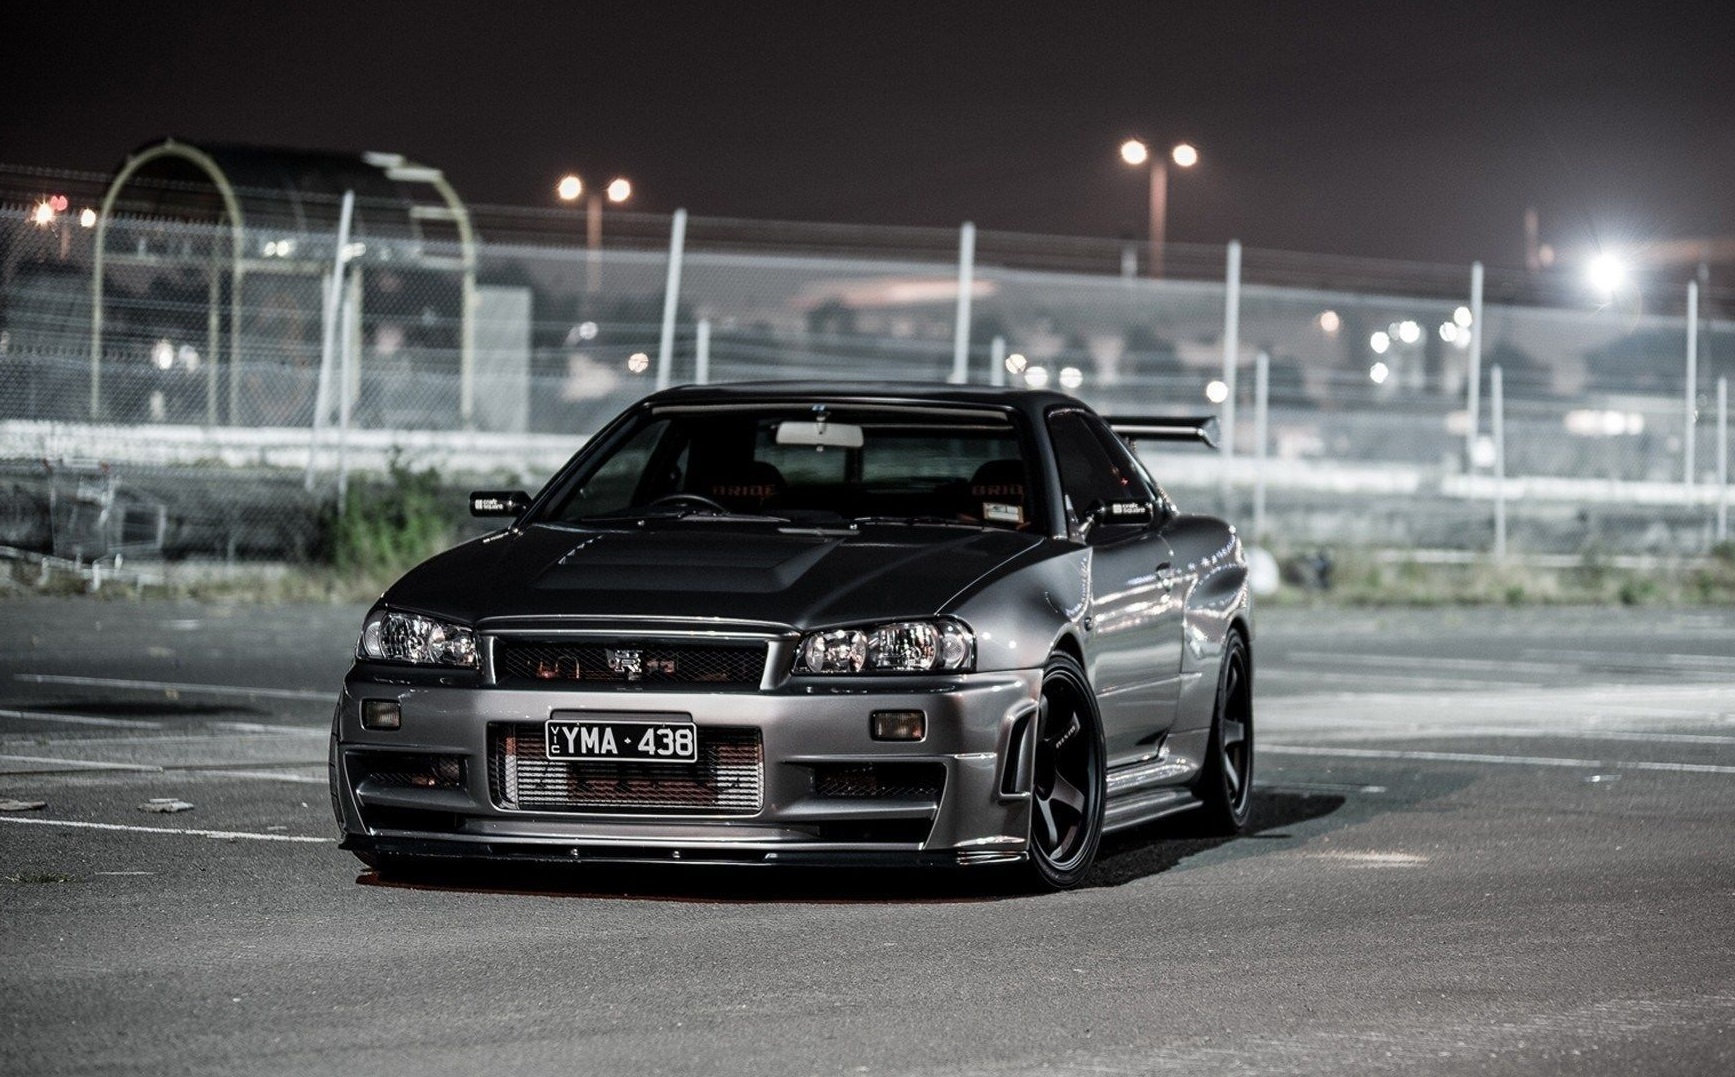 The Godzilla Mobil JDM Legendaris